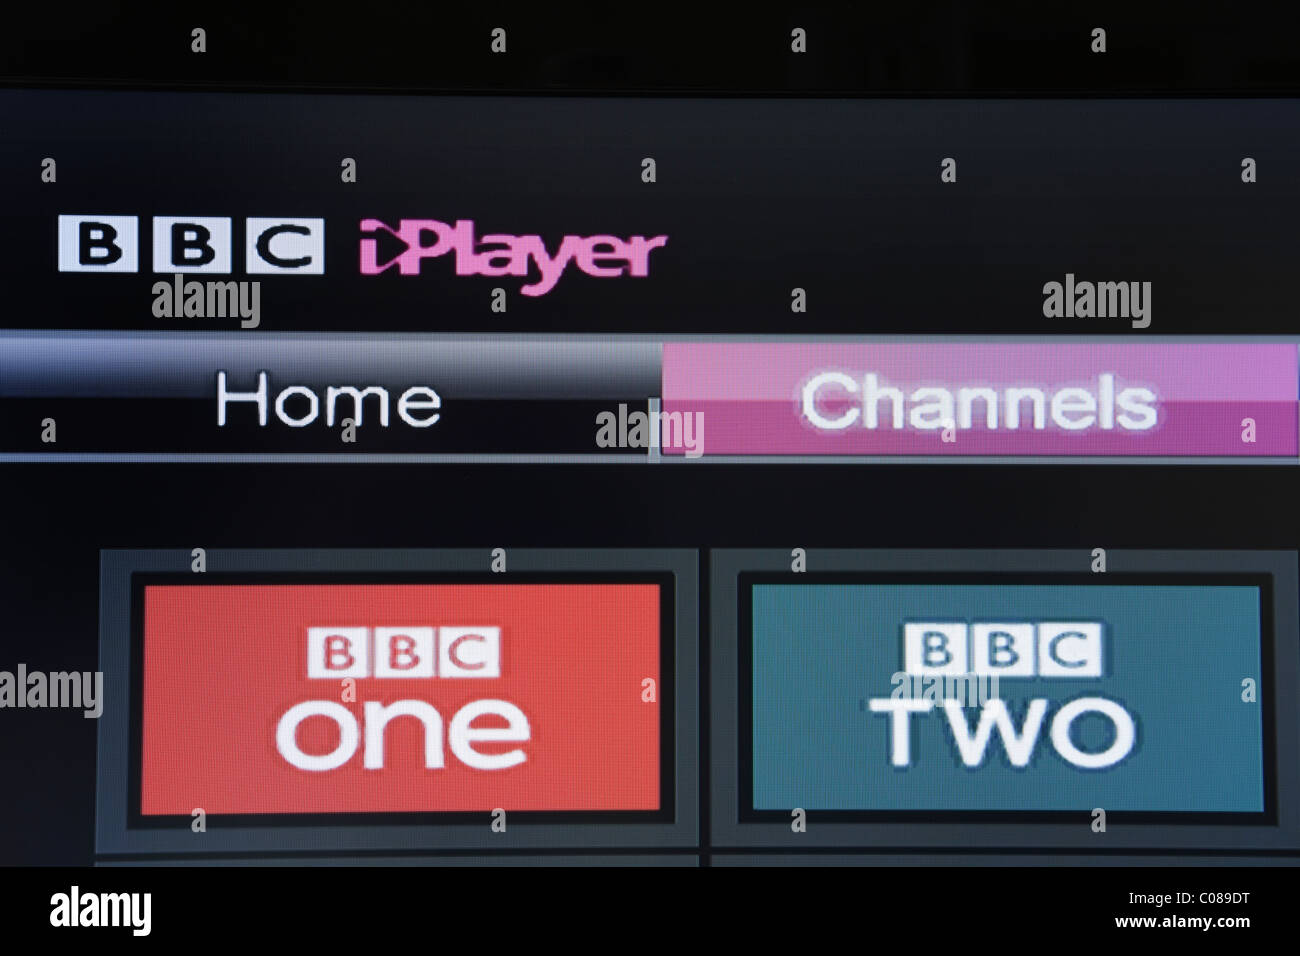 UK, Europe. Close-up of a flatscreen television showing BBC iPlayer beta channels on Freesat screen - Stock Image